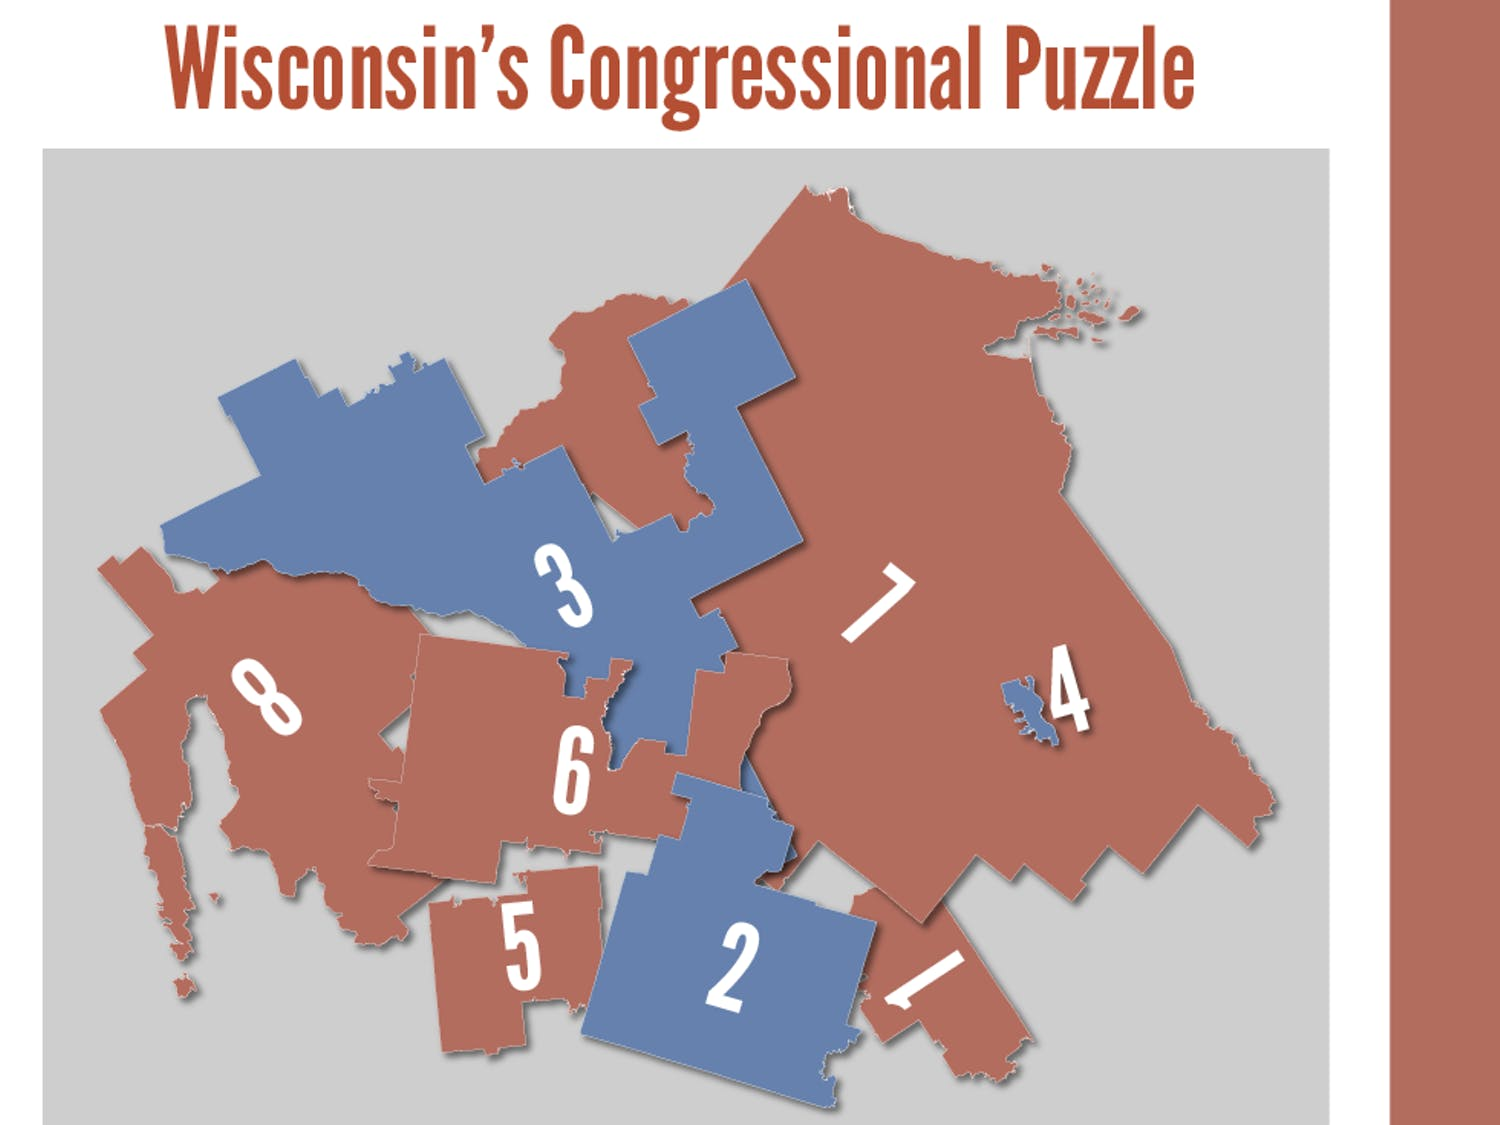 Graphic representing the Wisconsin Congressional districting as a puzzle.